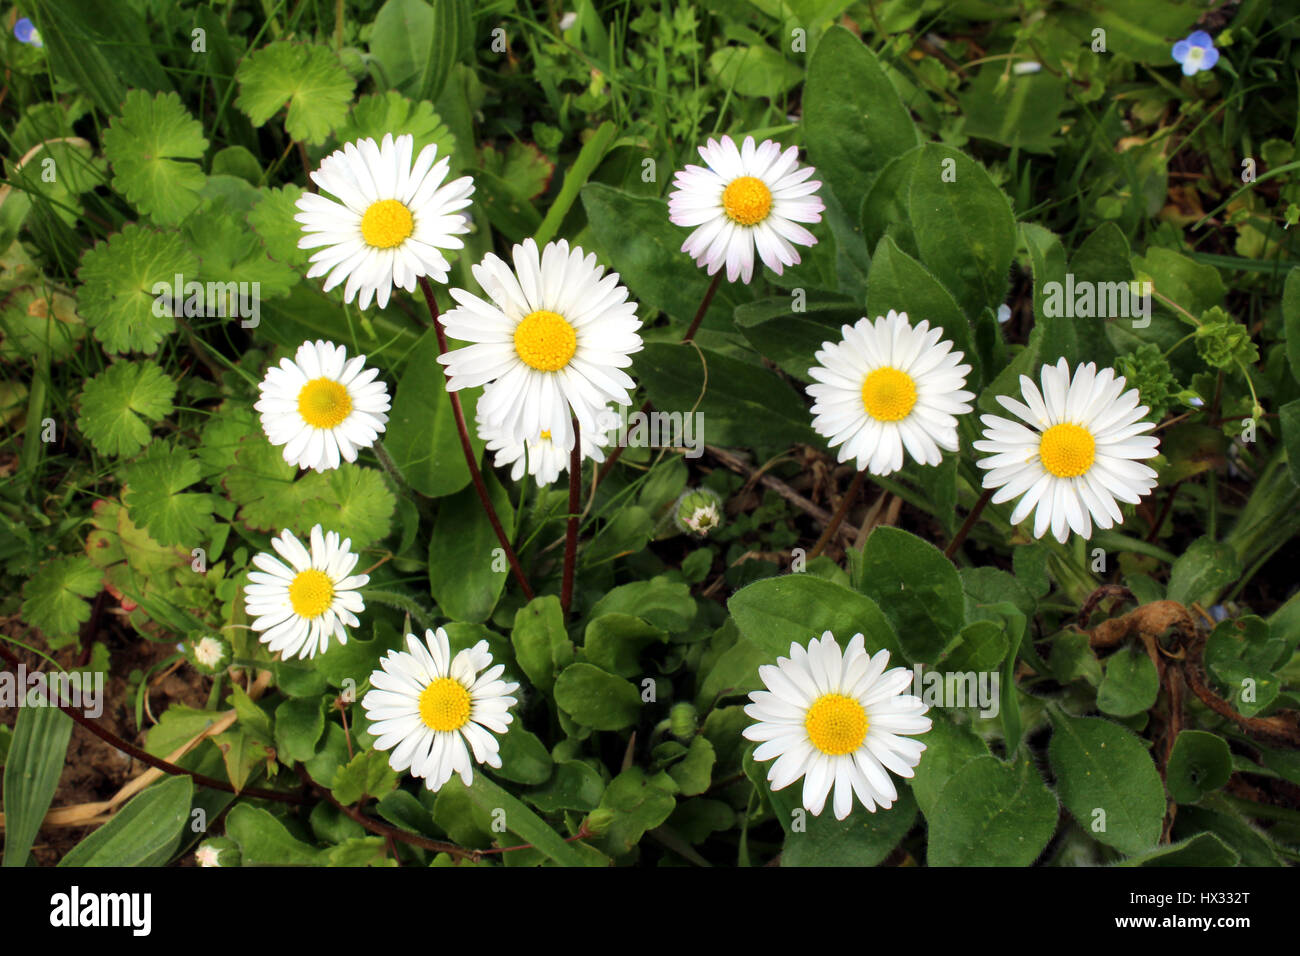 Daisies and forget me nots flowers stock photo 136521920 alamy daisies and forget me nots flowers izmirmasajfo